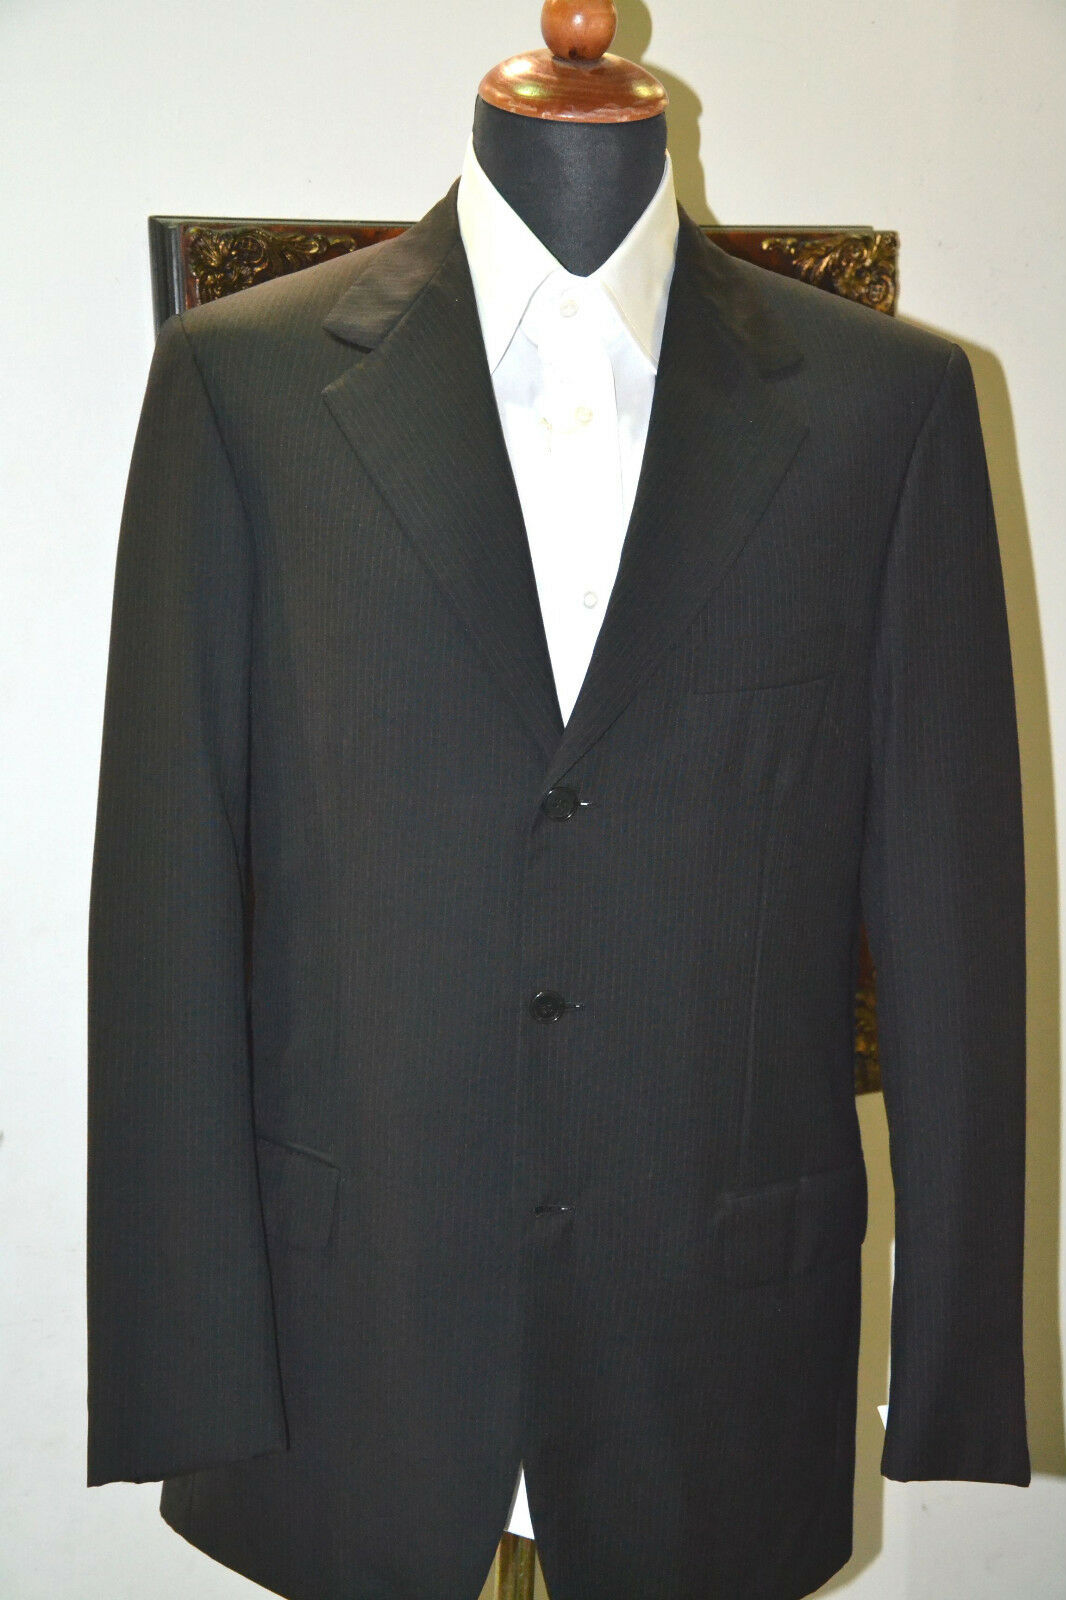 NEW  BRIONI  SUIT  100% Wool    SIZE 38  us 48   eu  Made in